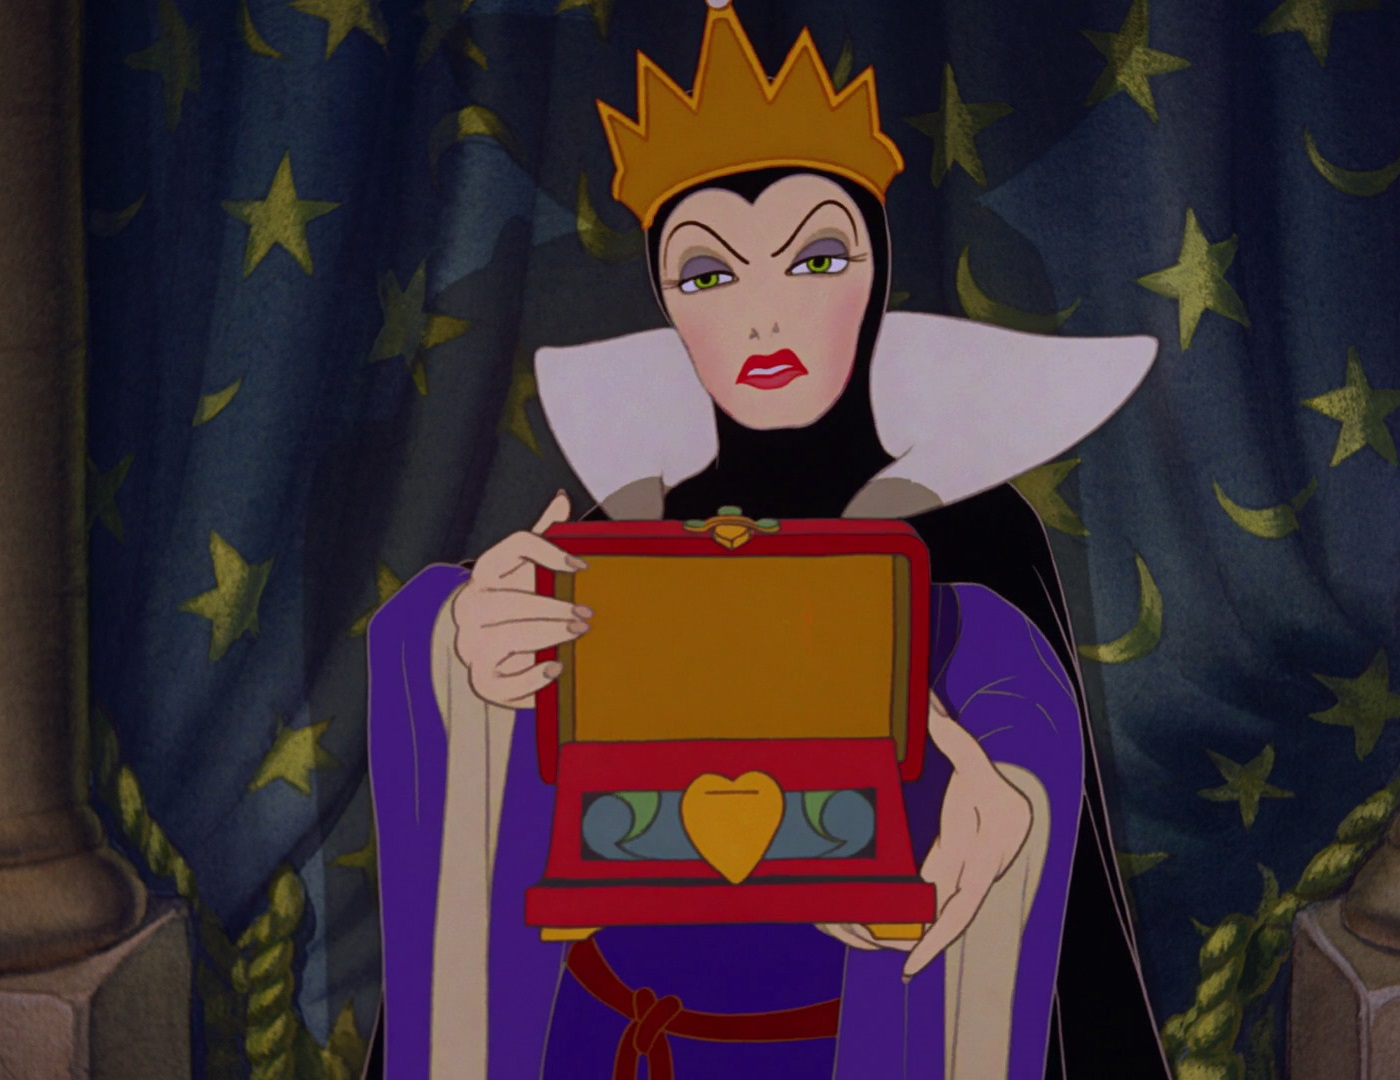 Disney Villains facts